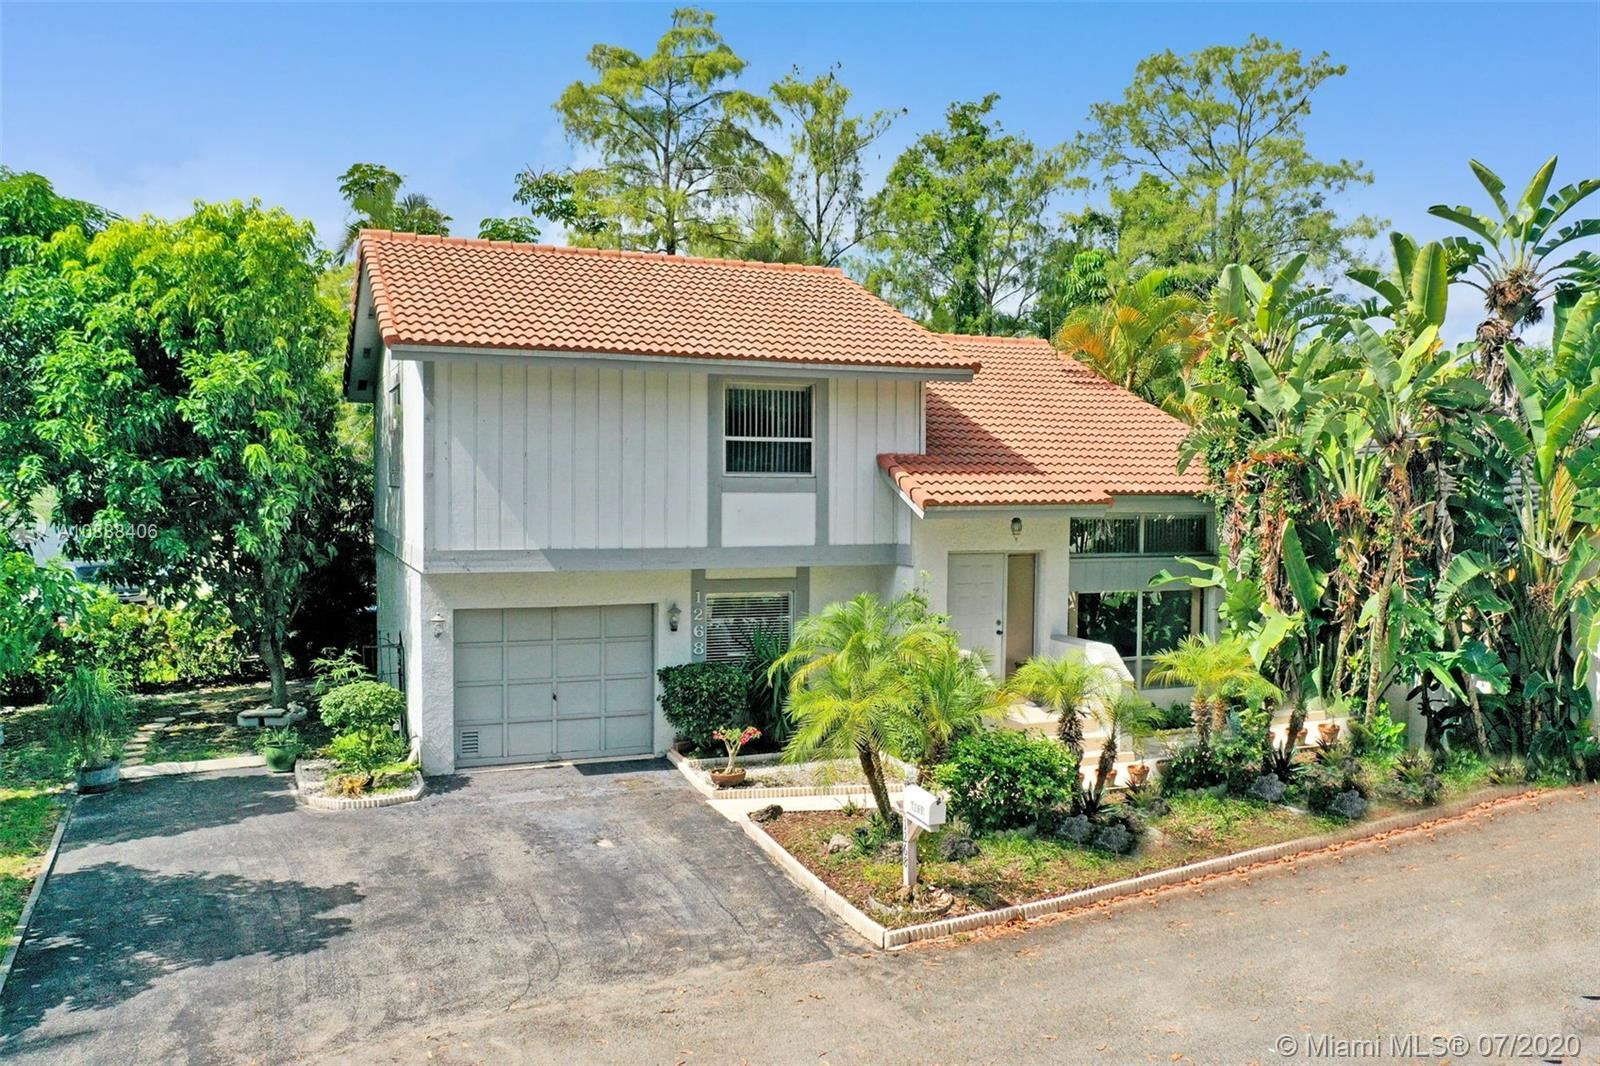 1268 NW 91st Ave, Coral Springs, FL 33071 - #: A10888406